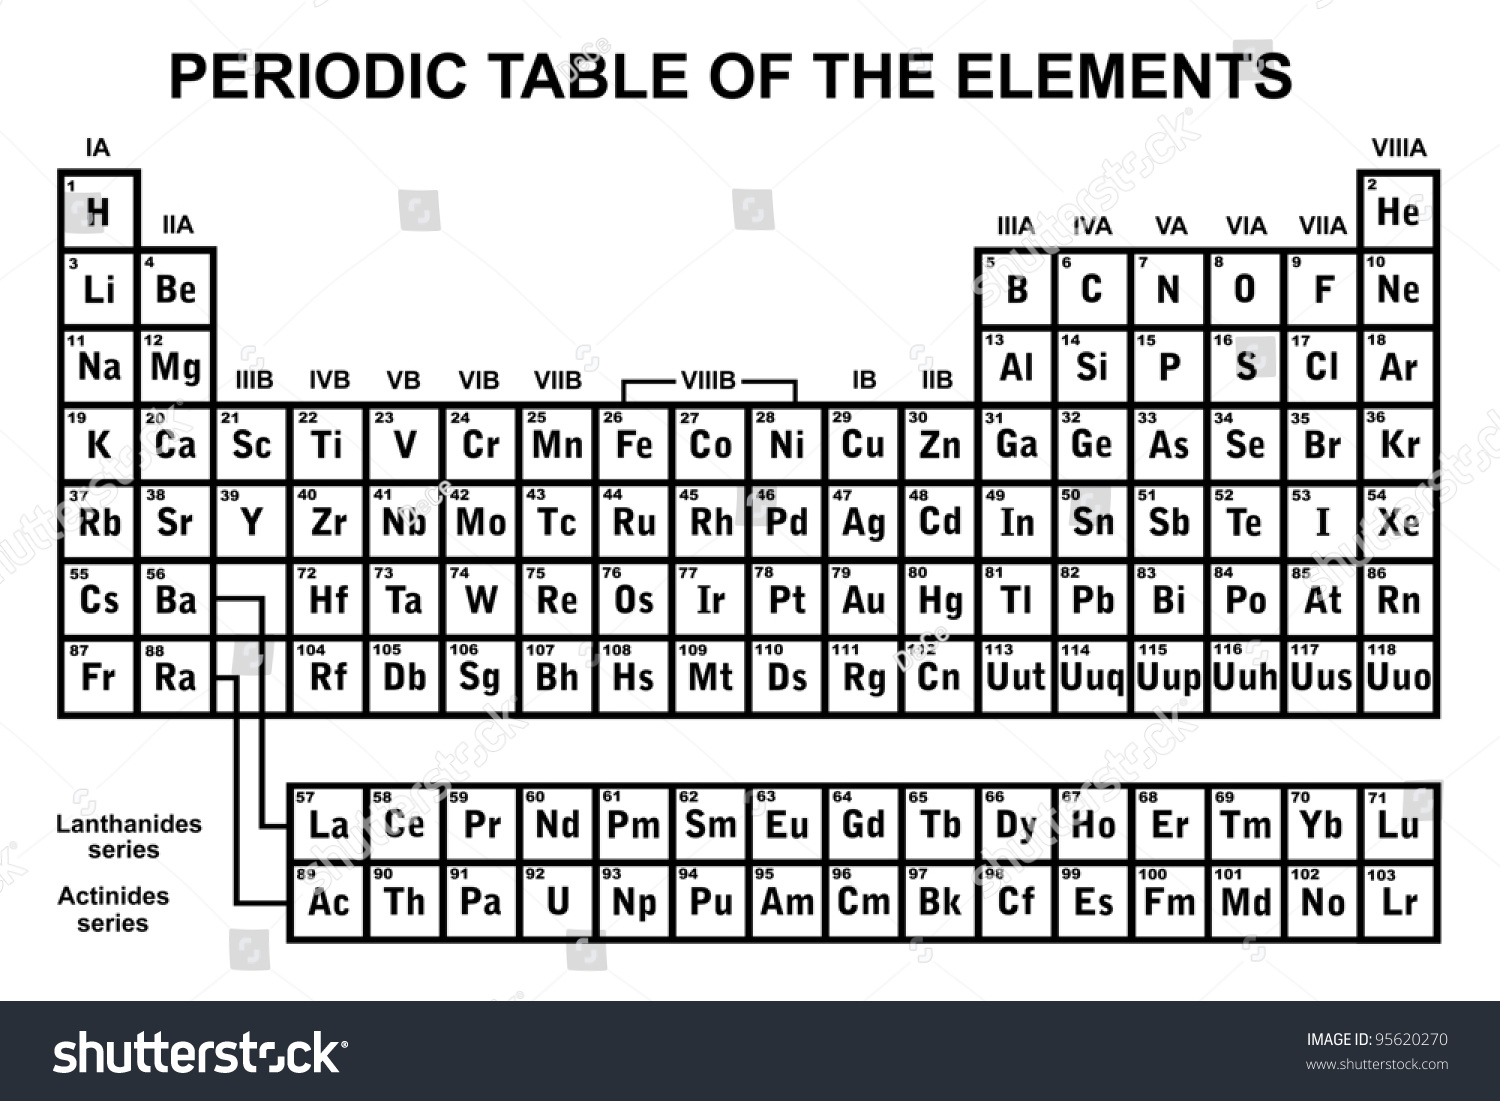 114 element periodic table images periodic table images 114 element periodic table choice image periodic table images royalty free periodic table of the elements gamestrikefo Image collections